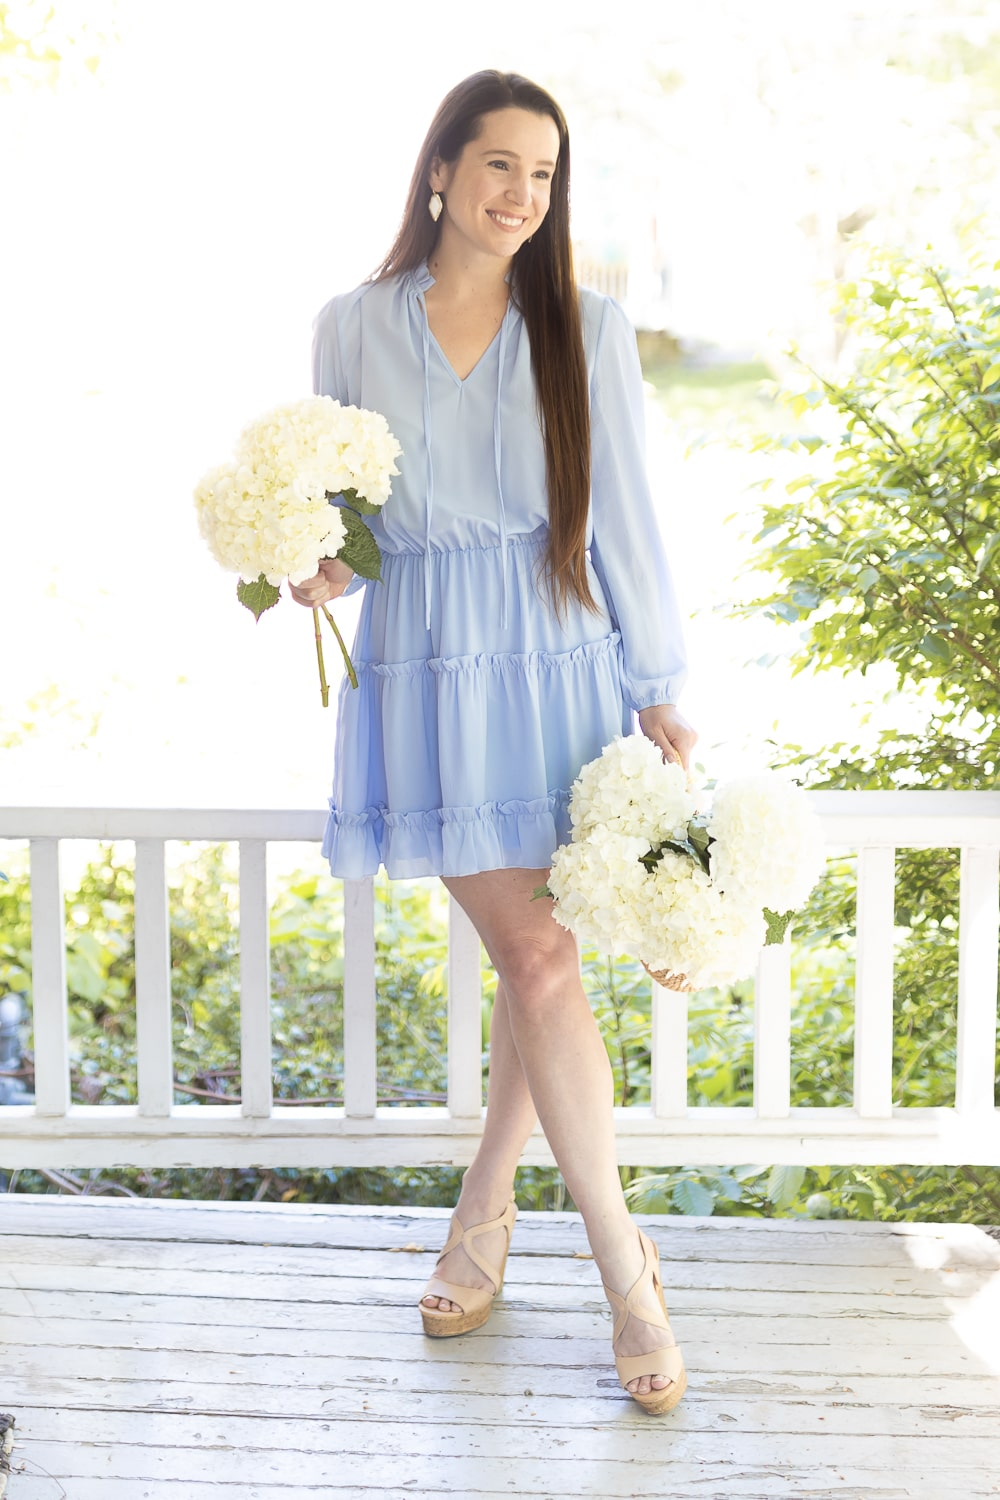 Light blue dress outfit styled by affordable fashion blogger Stephanie Ziajka on Diary of a Debutante